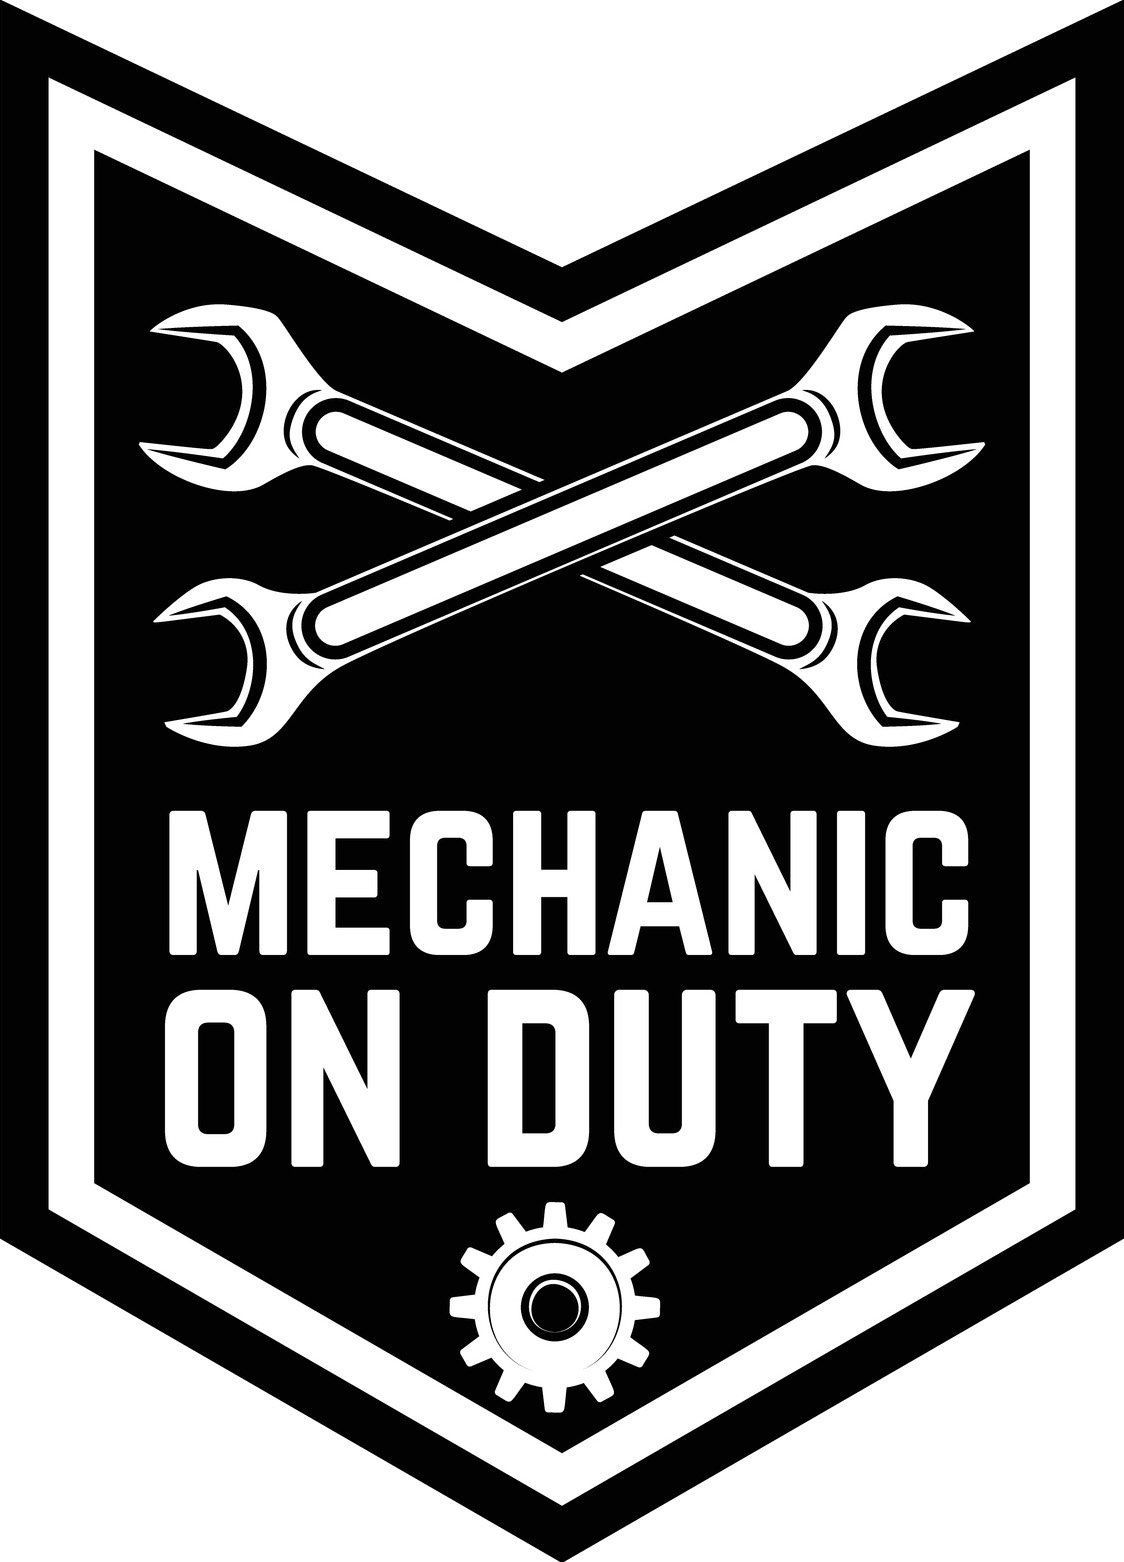 Cool Manly Mechanic On Duty Badge Cartoon Icon Vinyl Sticker (12'' Tall) by Shinobi Stickers